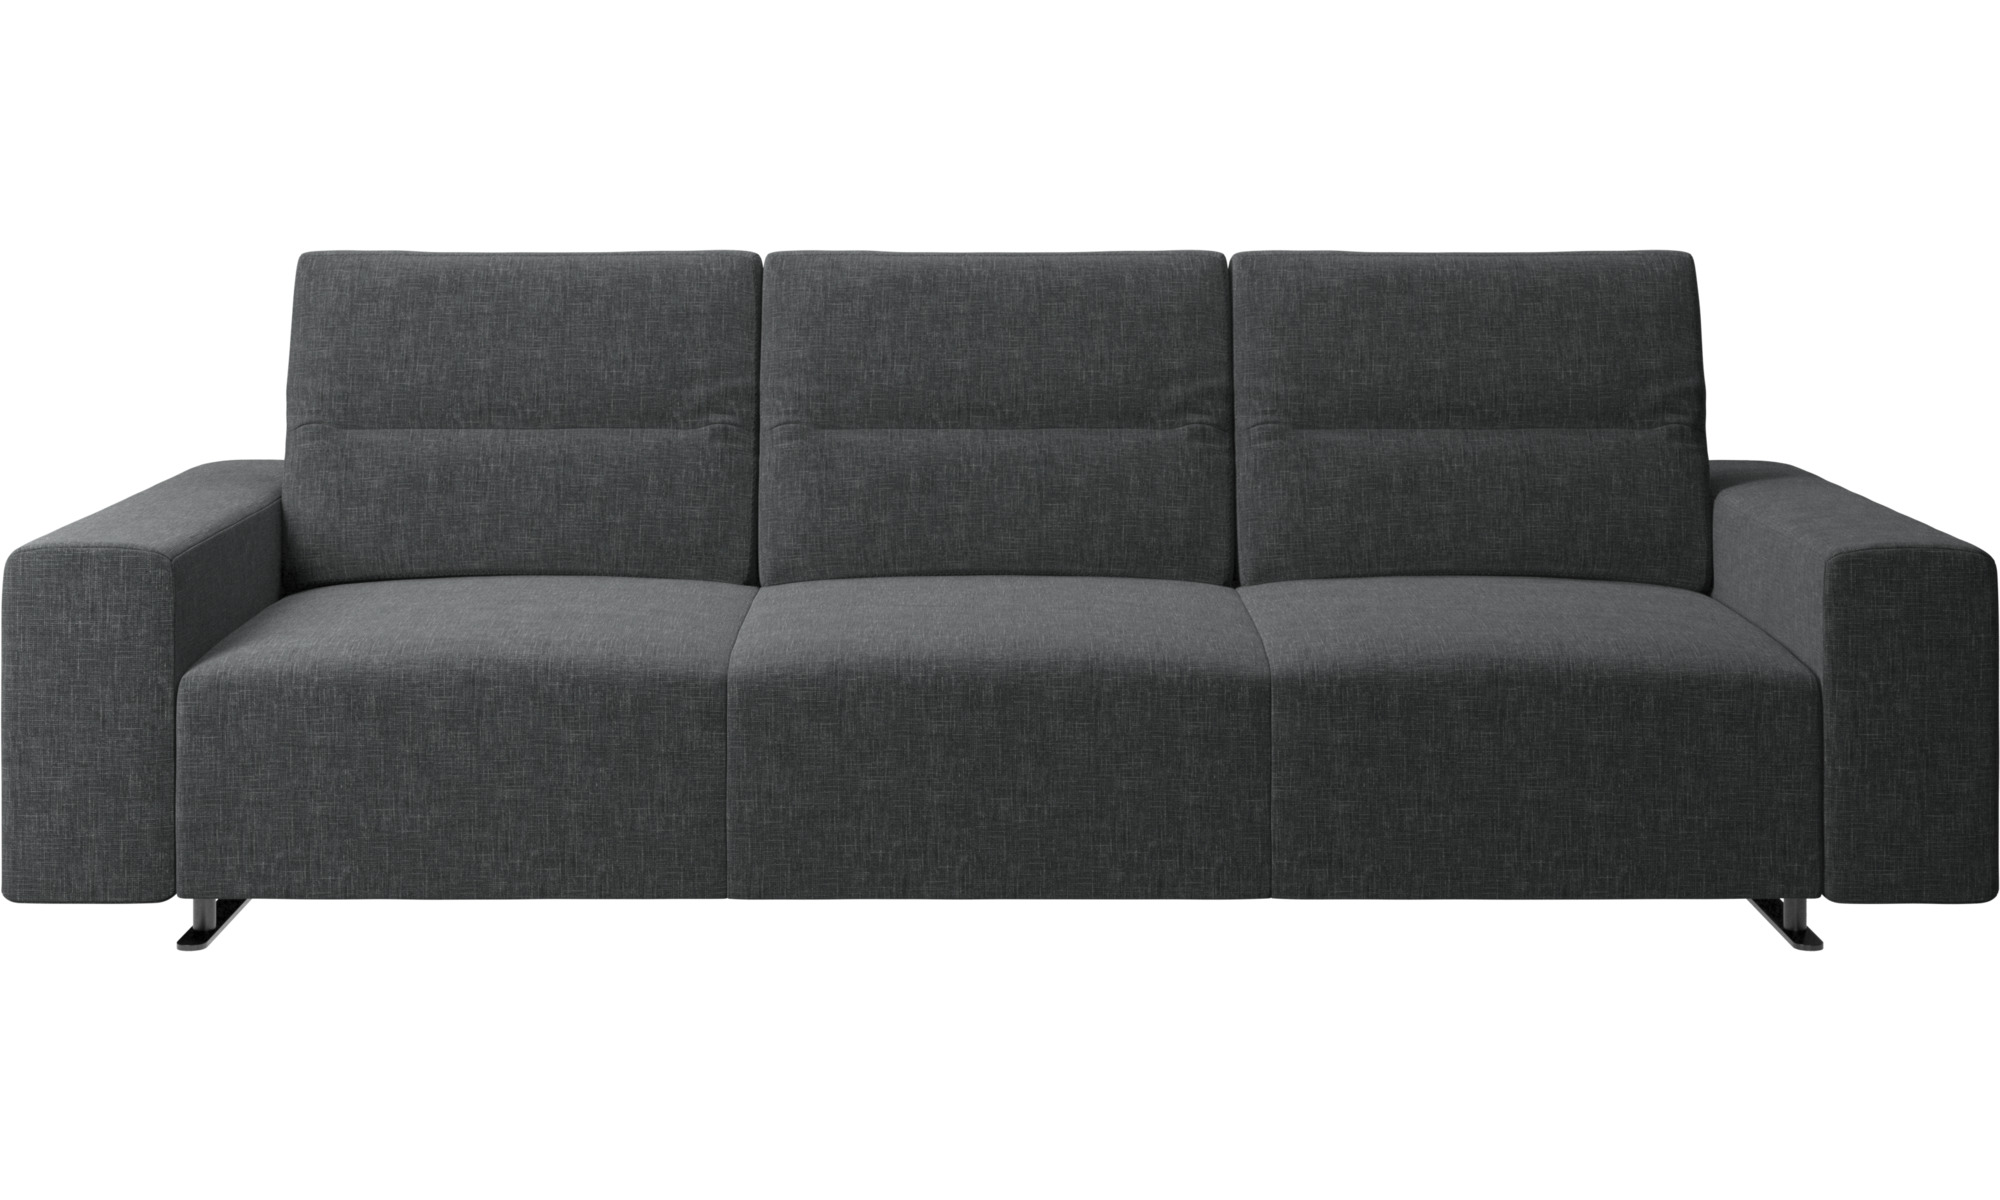 3 seater sofas hampton sofa with adjustable back and storage on the right side boconcept. Black Bedroom Furniture Sets. Home Design Ideas